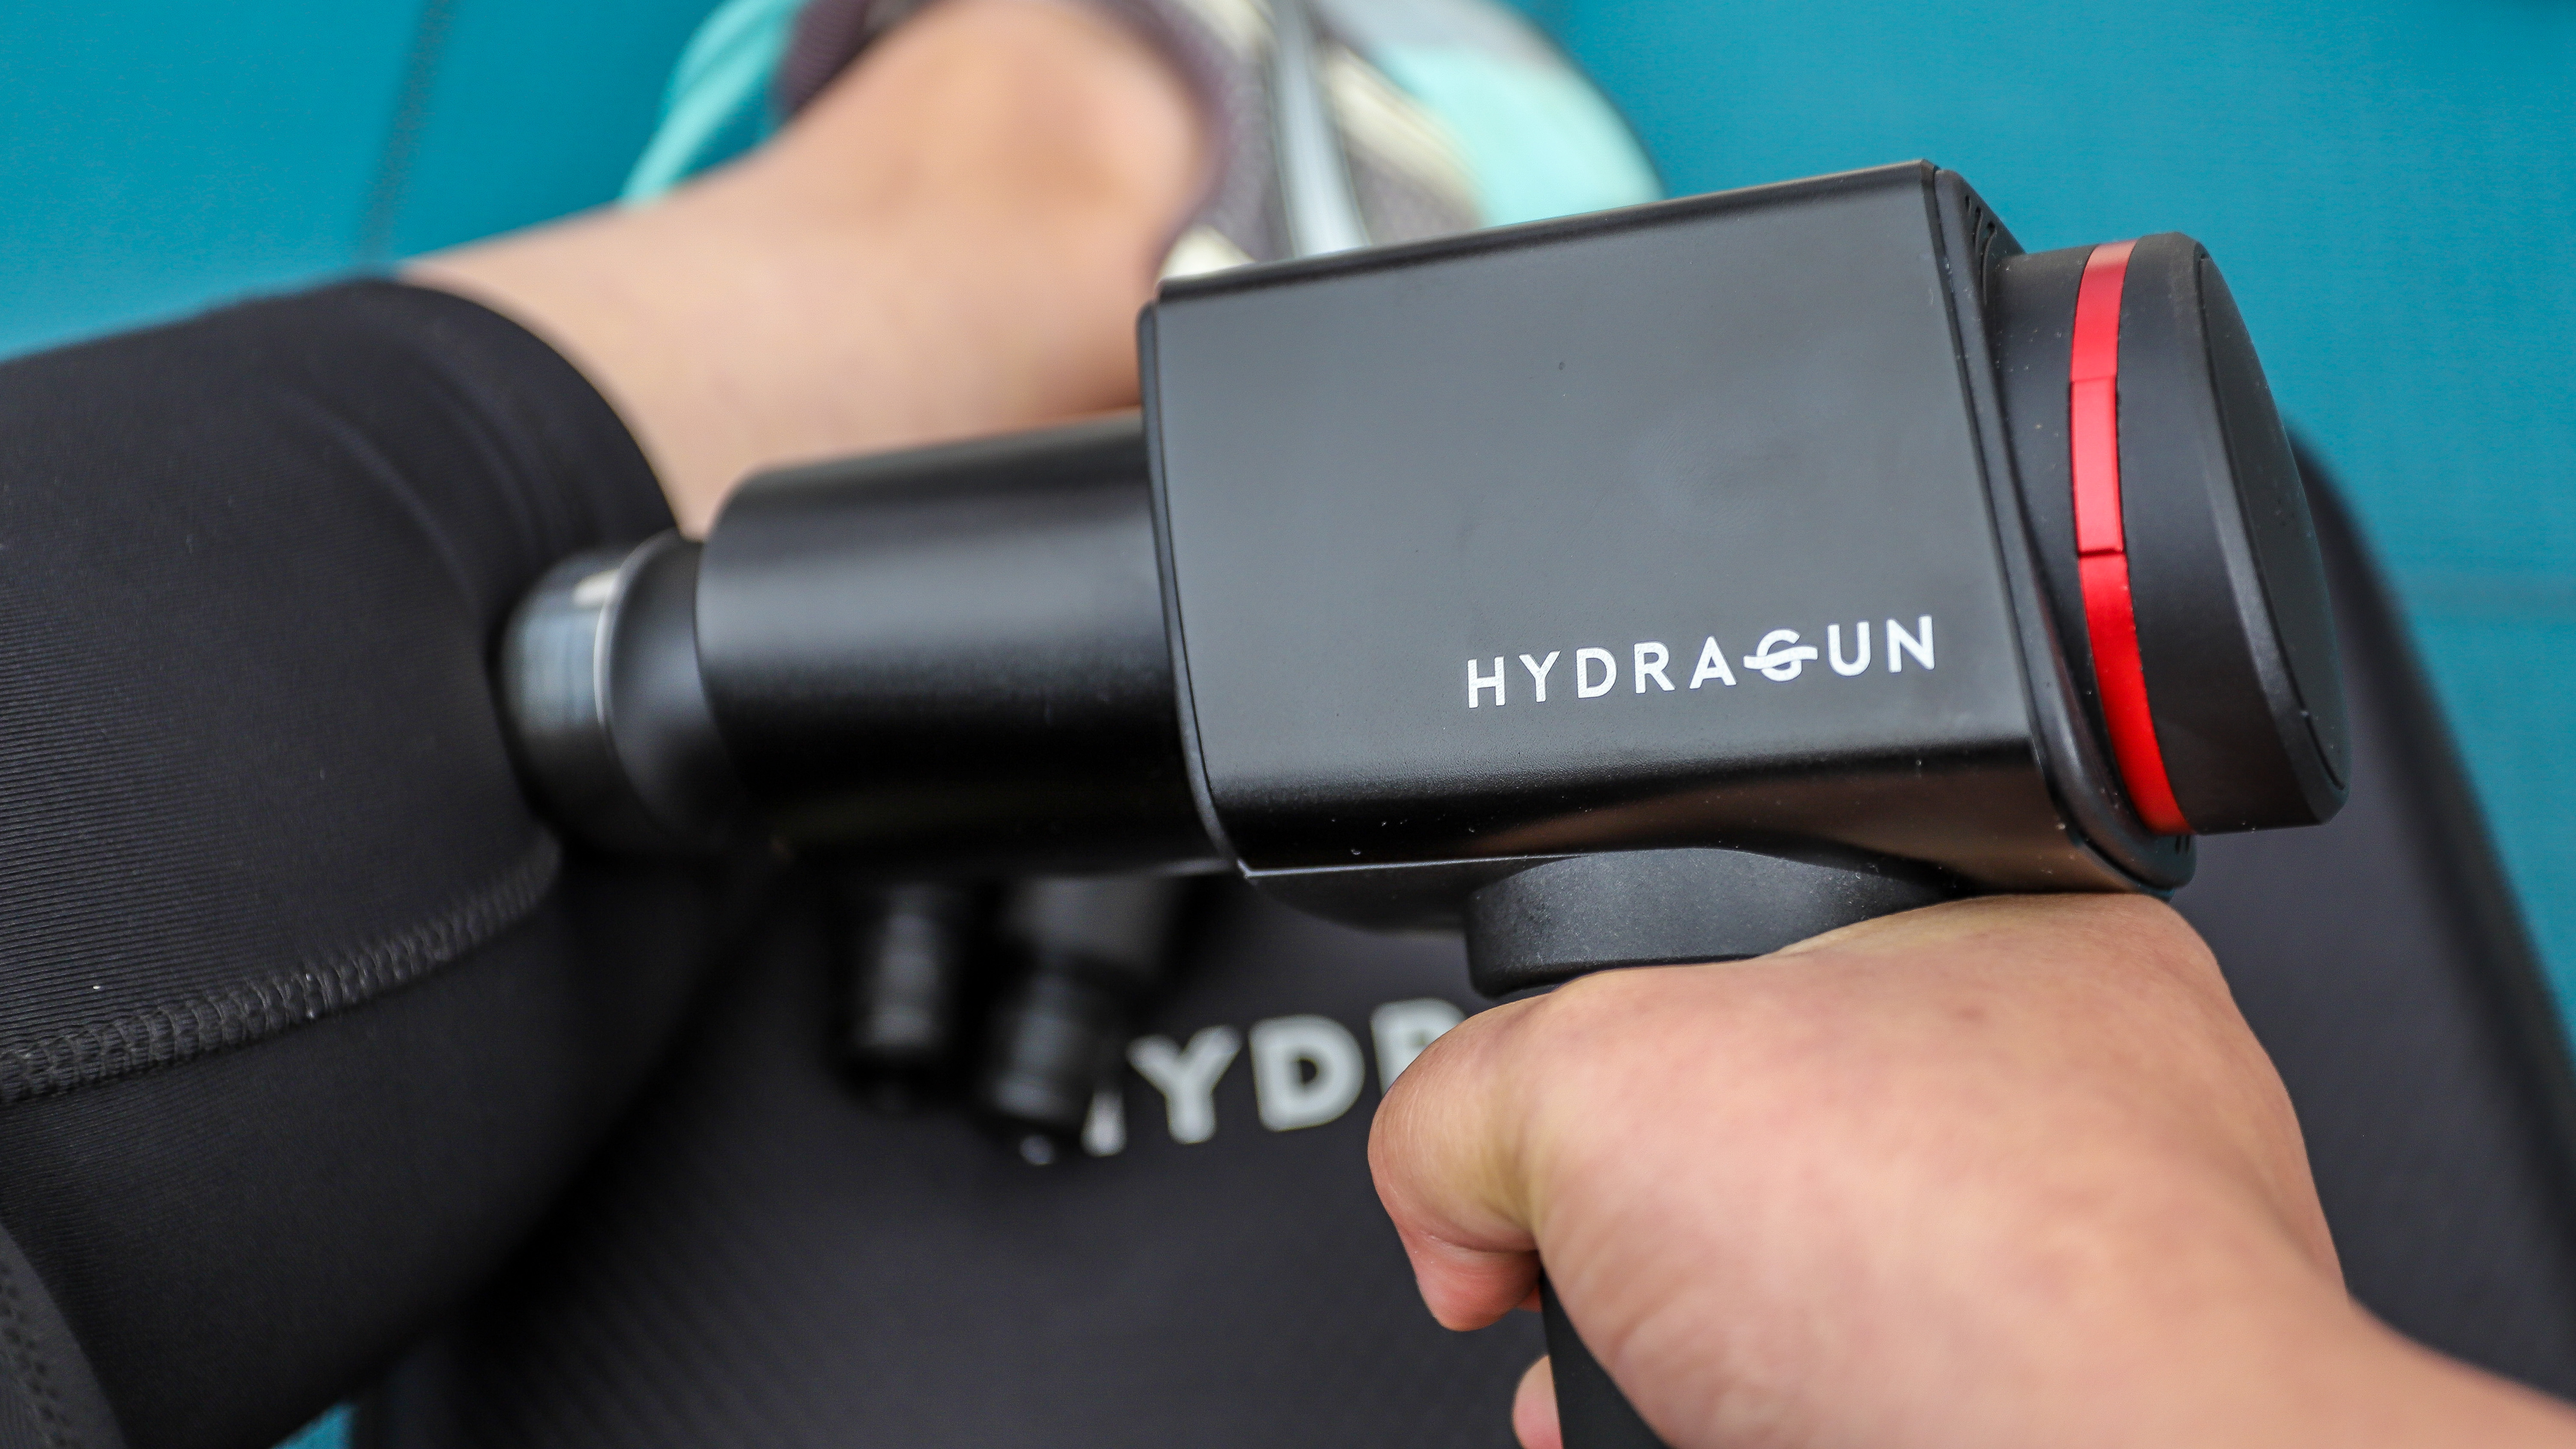 Hydragun in use on calf muscle